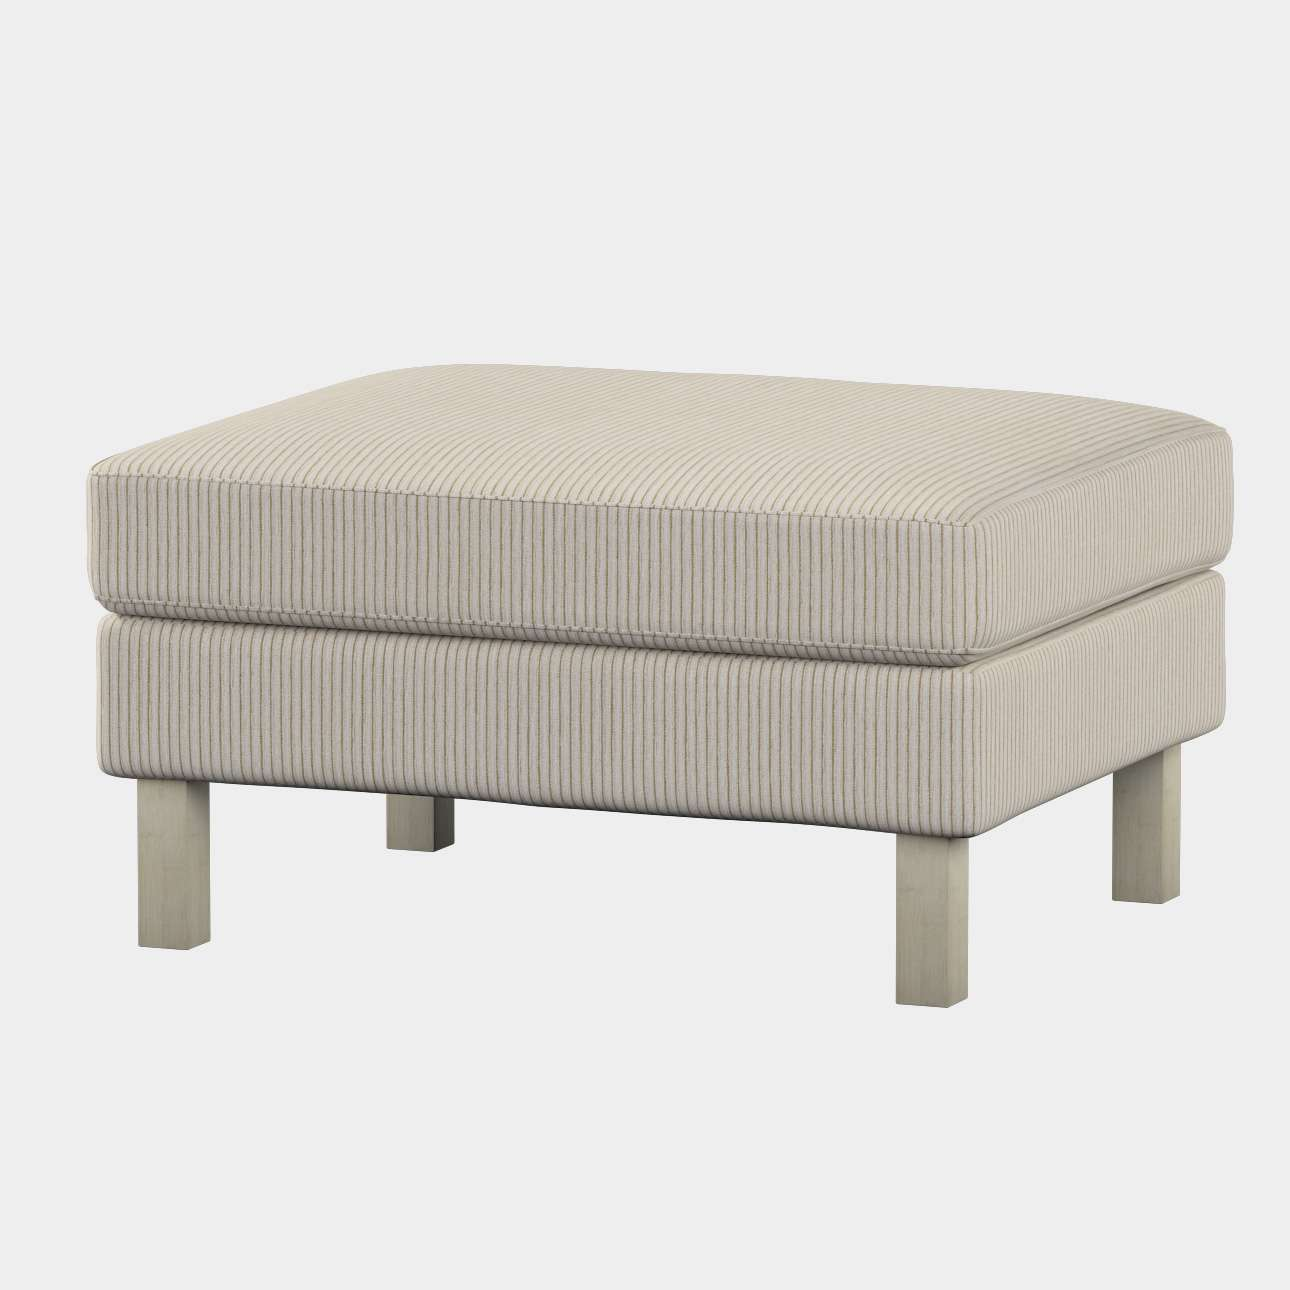 Karlstad footstool cover Karlstad footstool cover in collection Living, fabric: 105-90